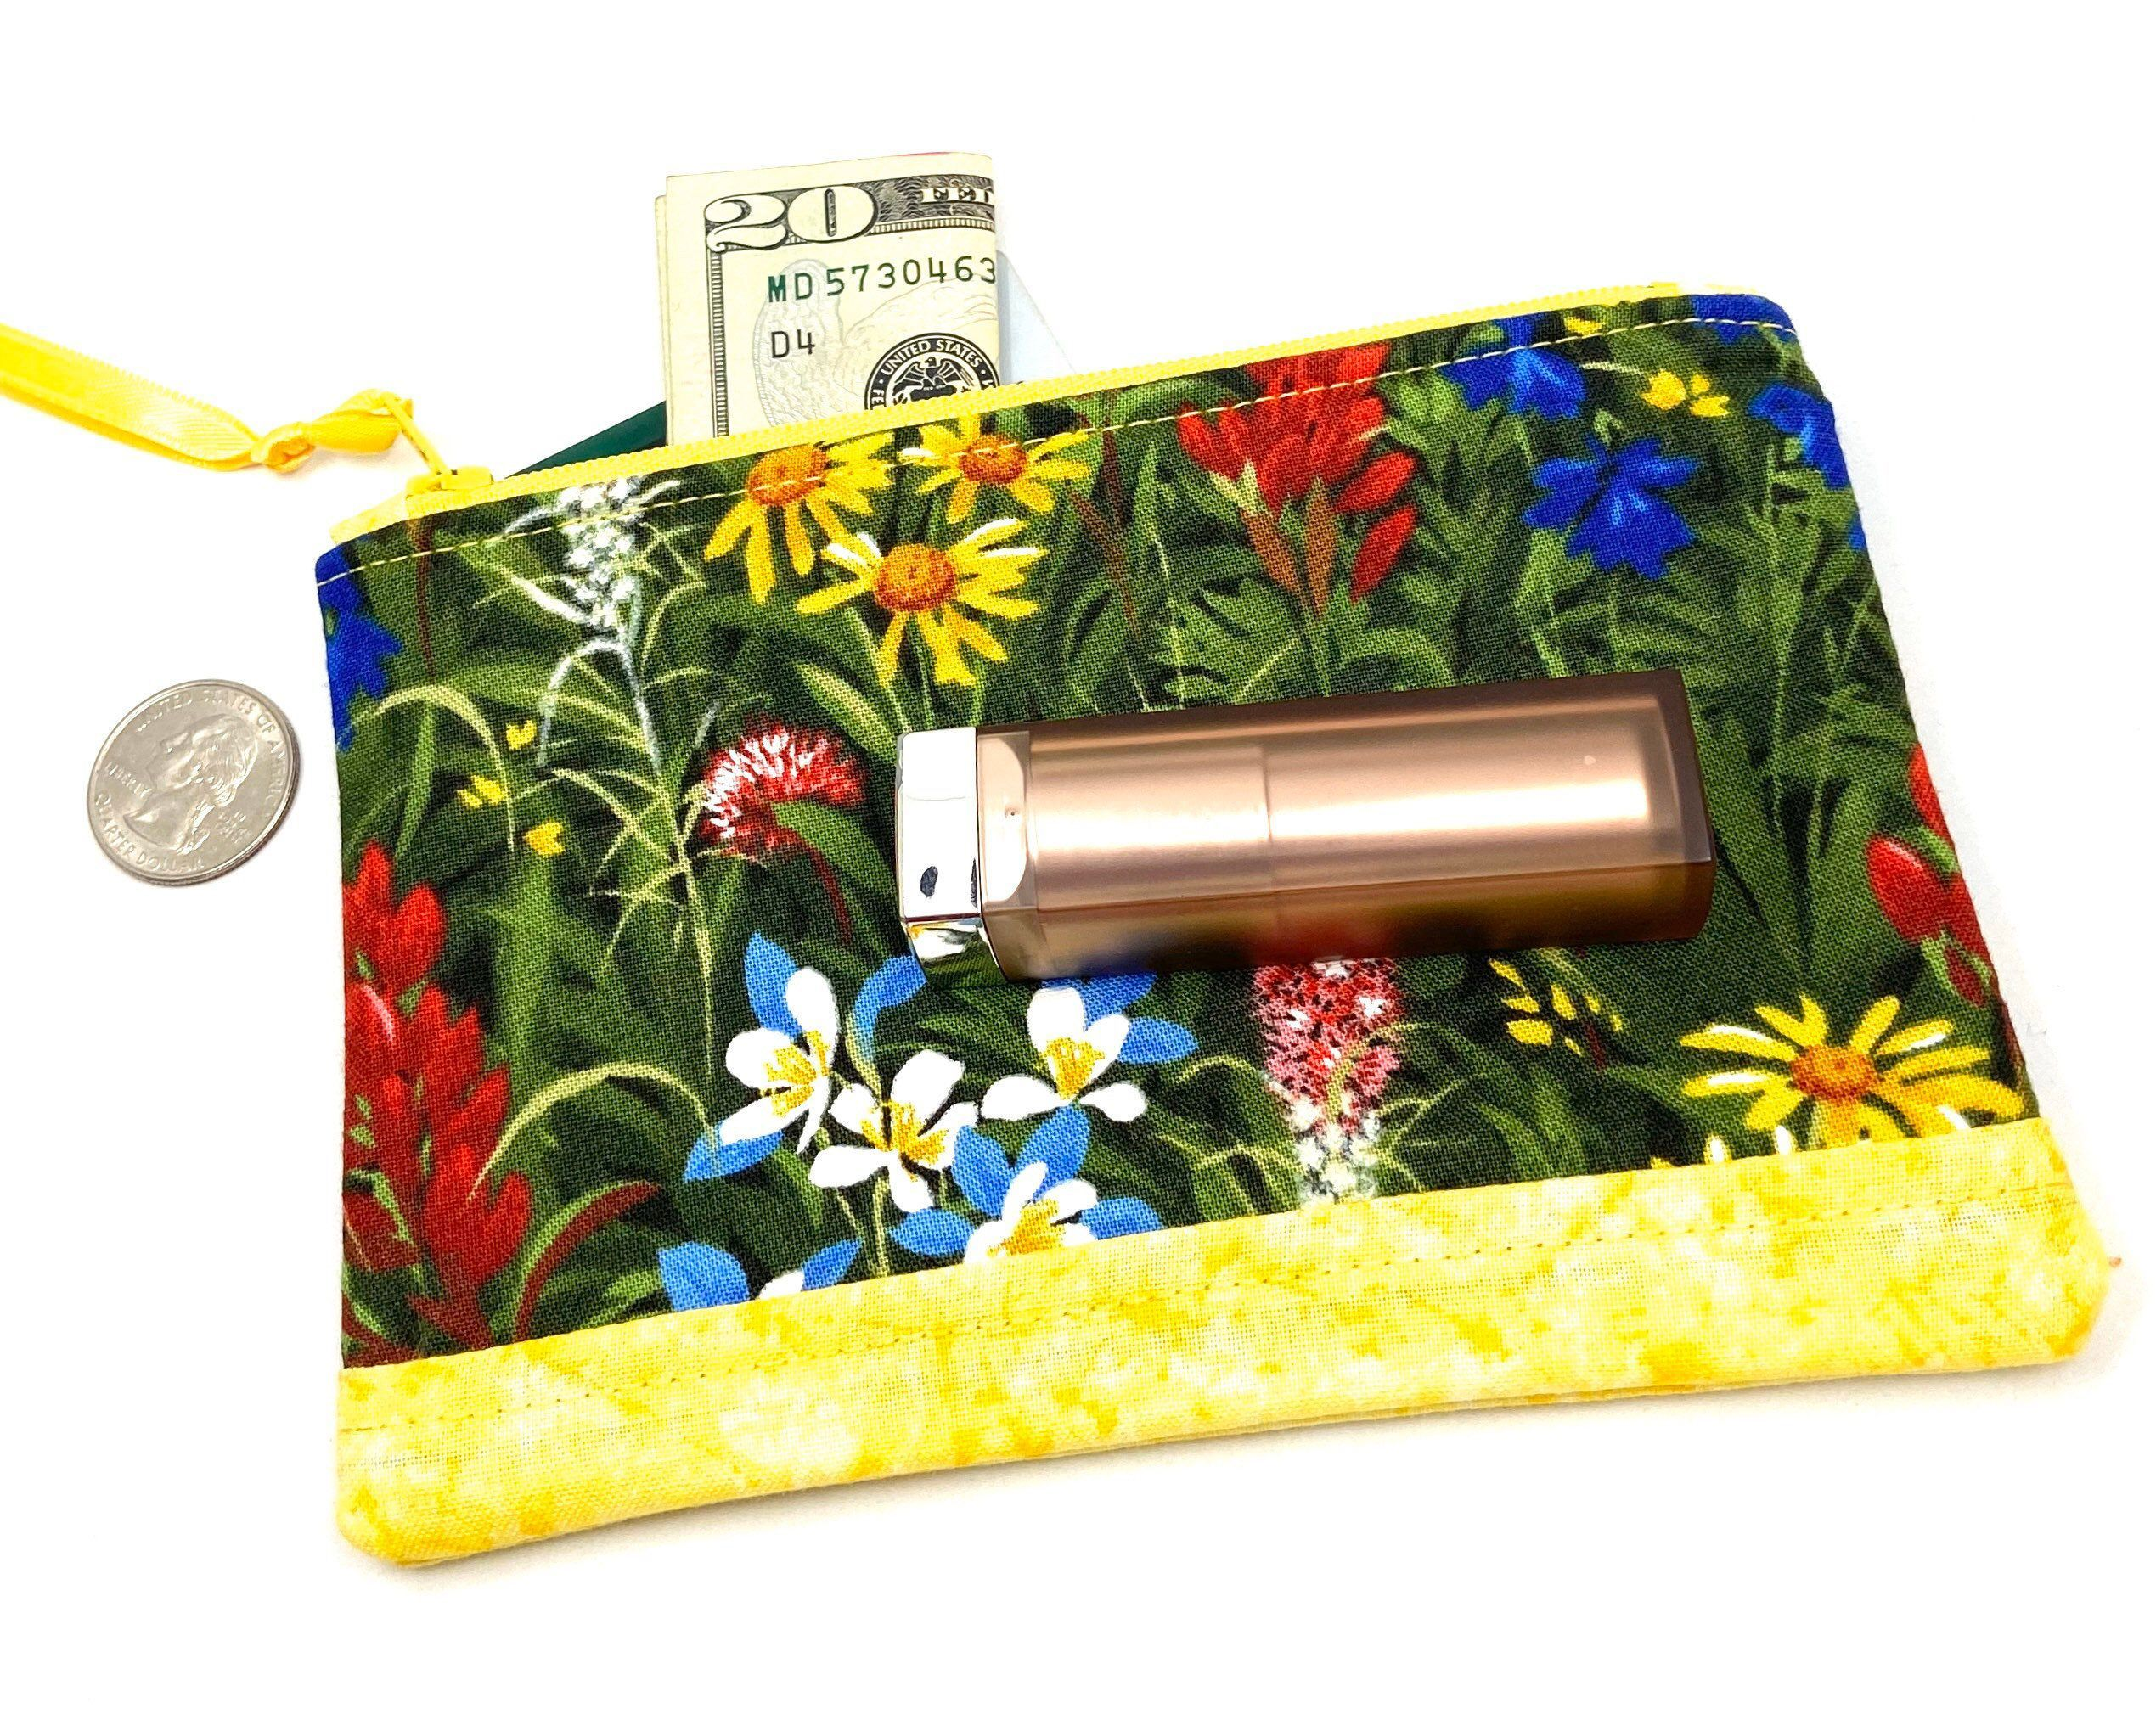 Wildflower Quilted Fabric Zipper Pouch, Coin Purse, Multi-Color Small Cosmetic Bag#bag #coin #cosmetic #fabric #multicolor #pouch #purse #quilted #small #wildflower #zipper